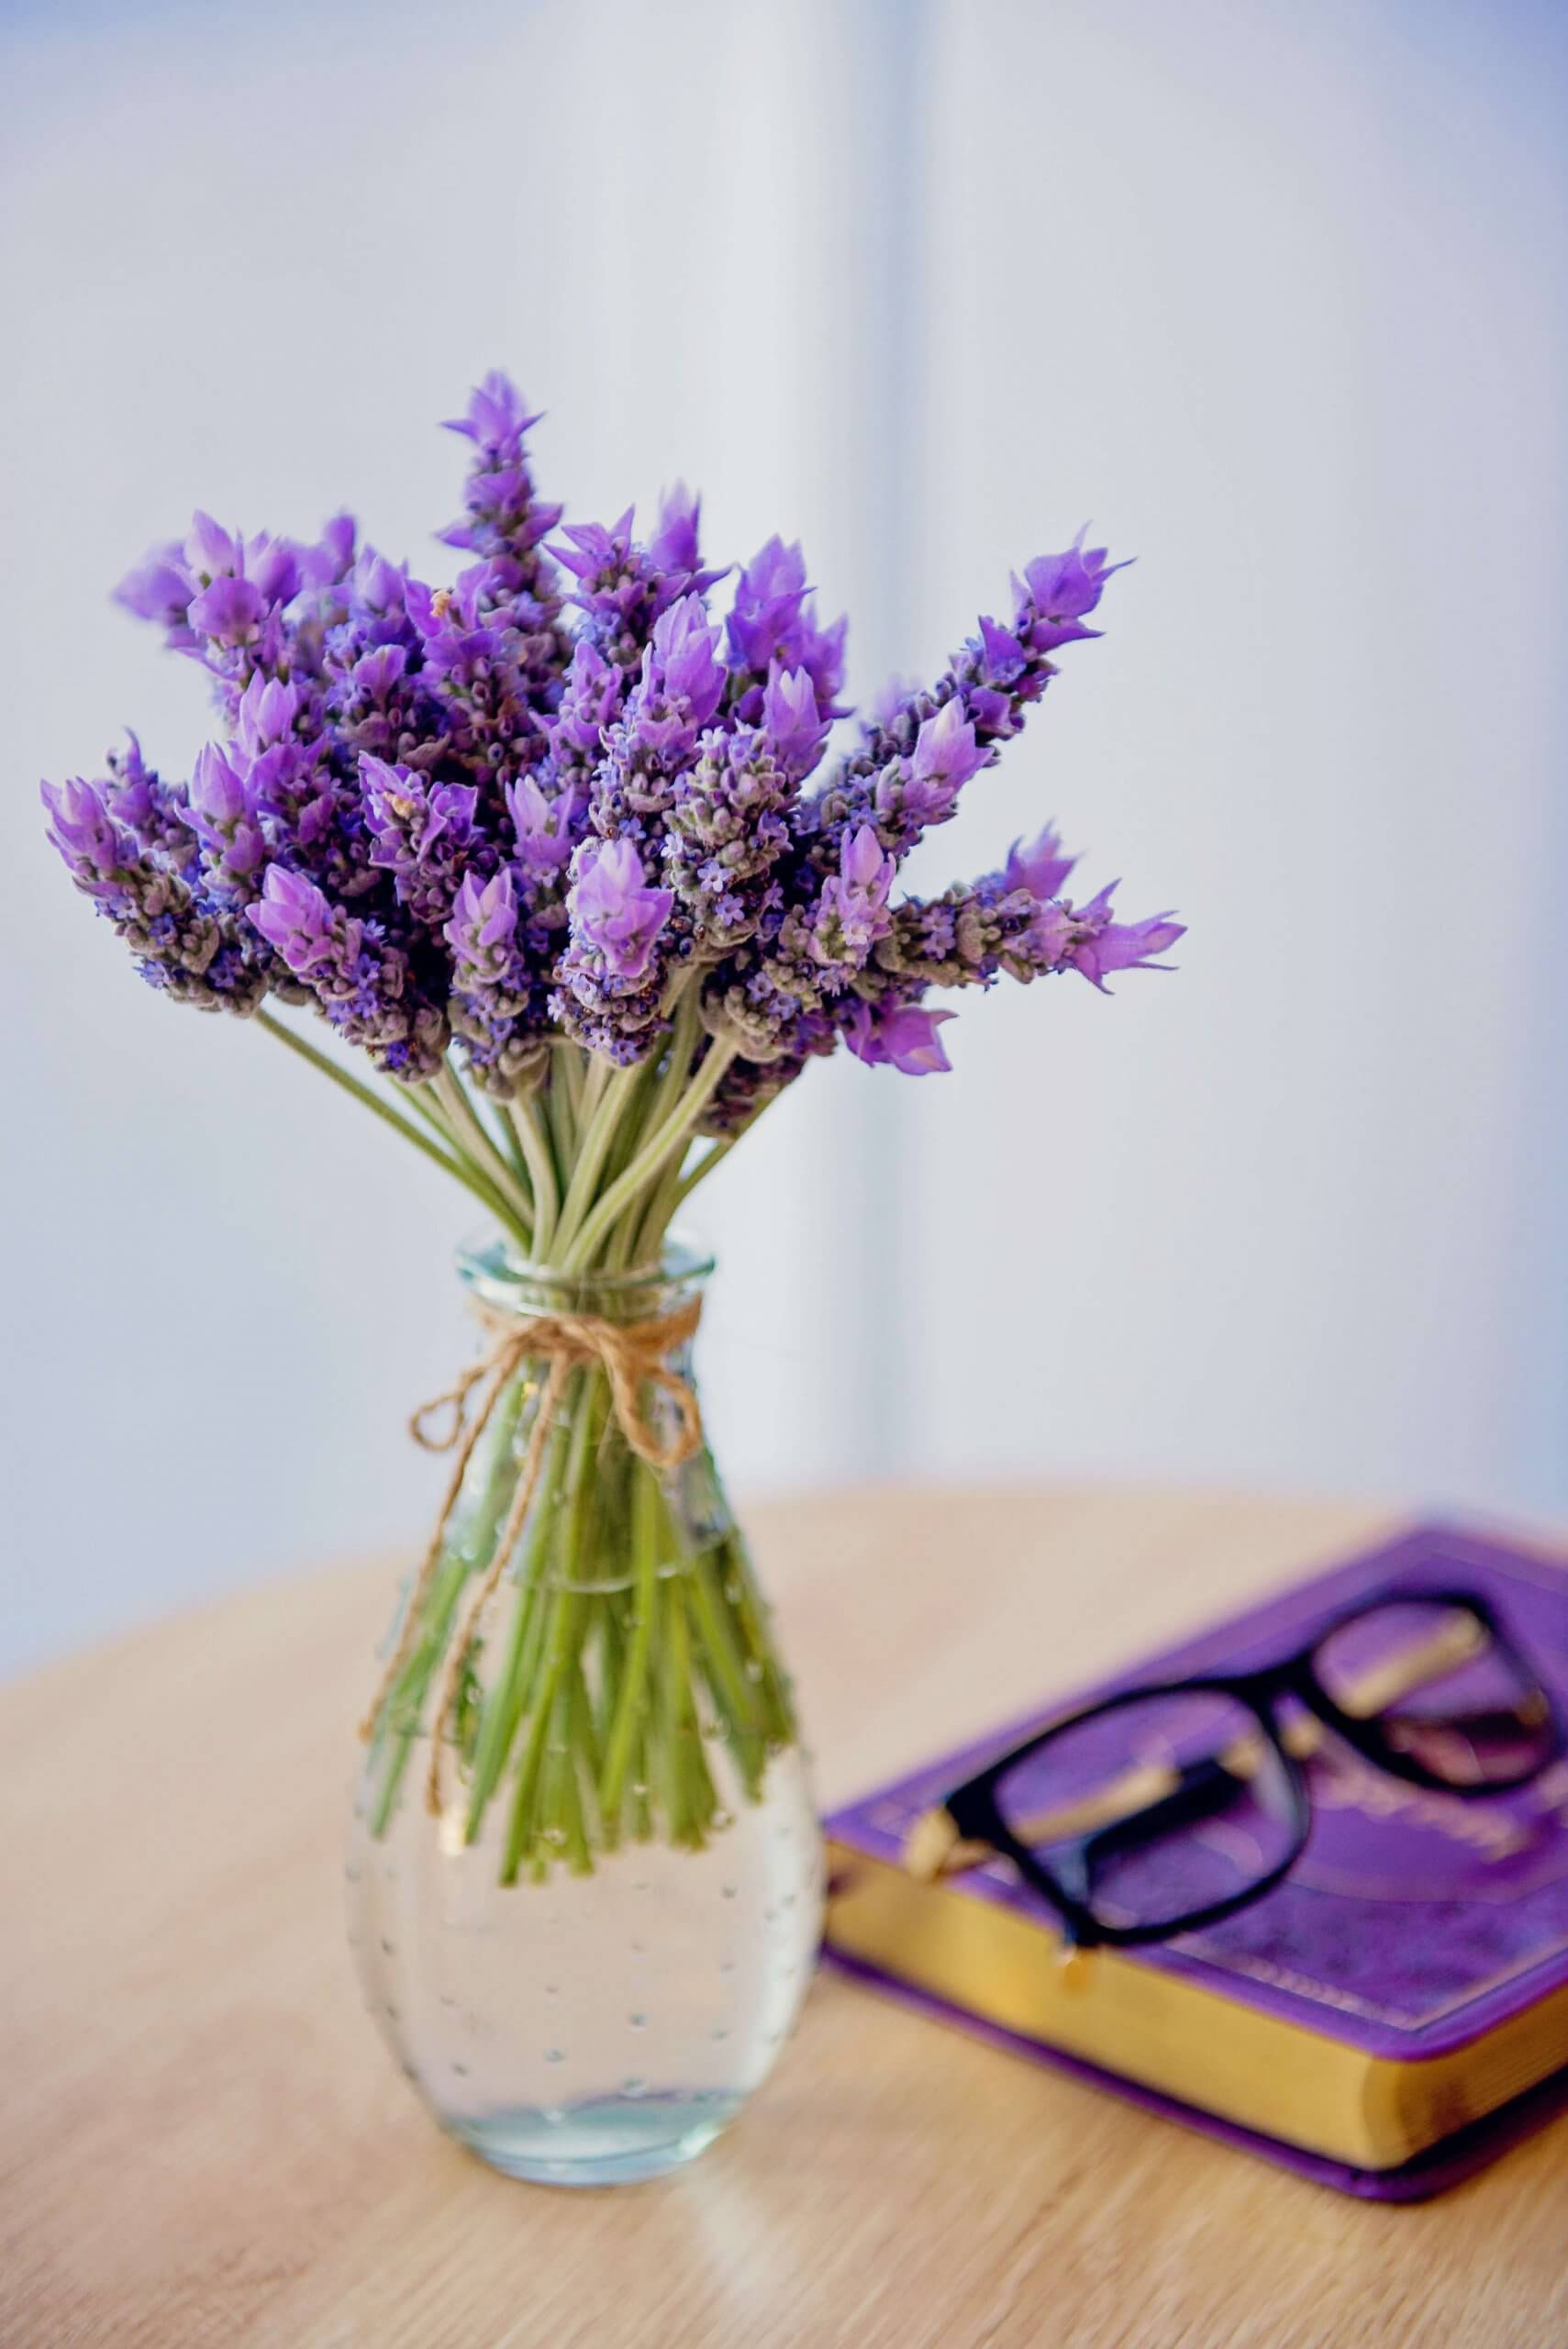 how to use fresh lavender | City Beauty